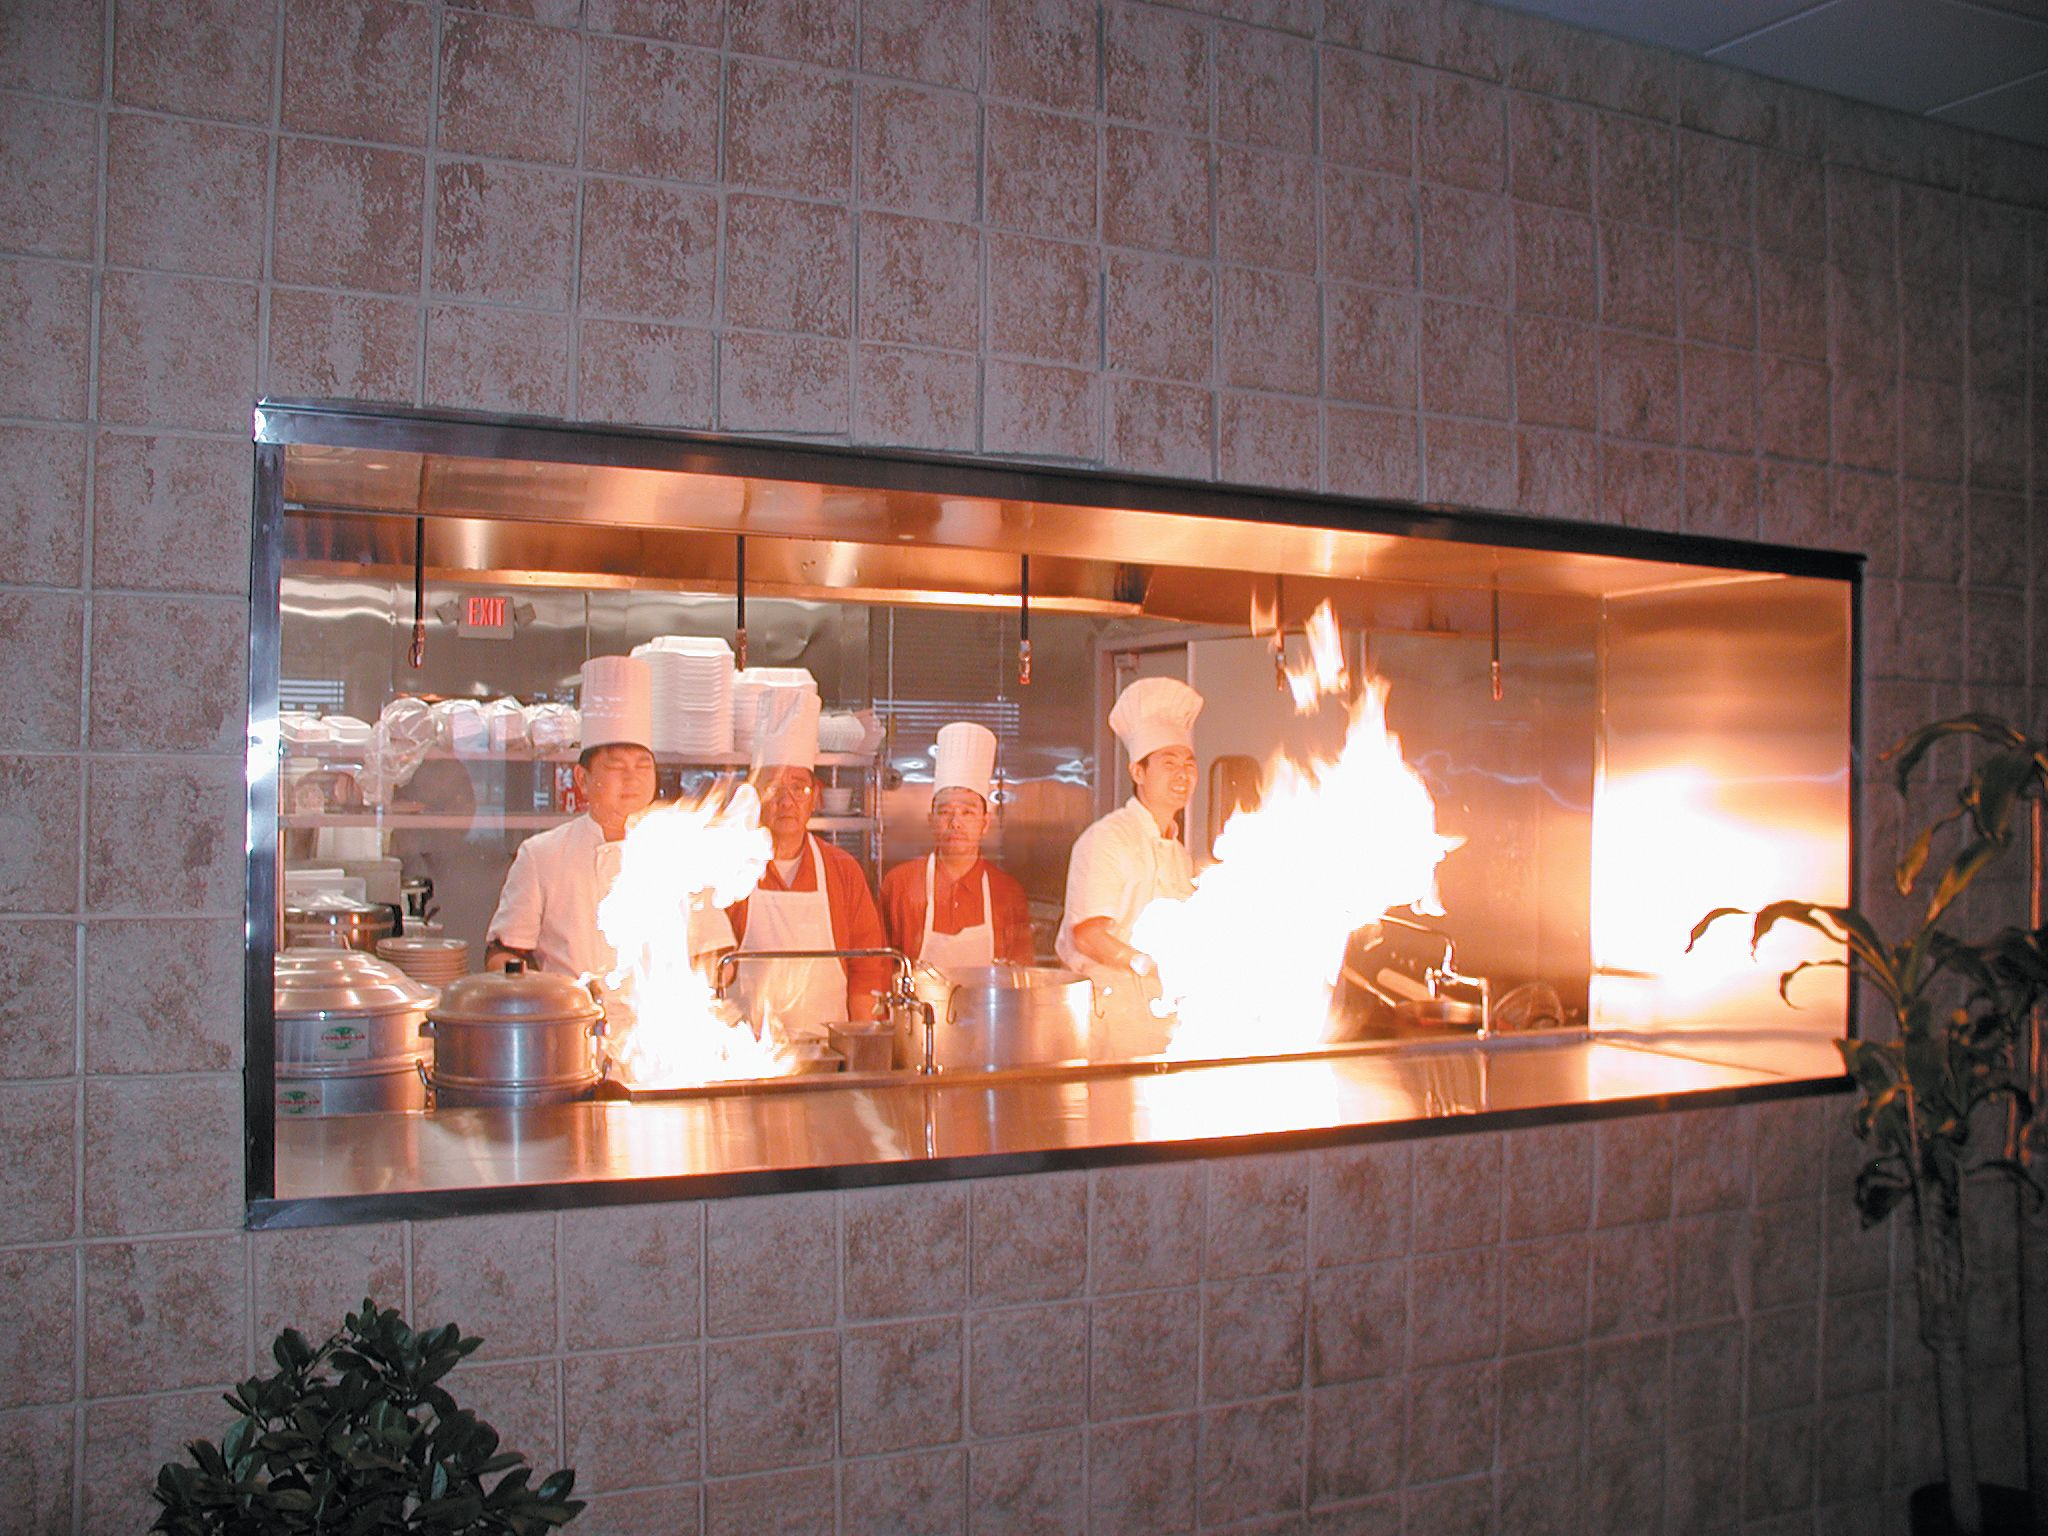 Restaurant Kitchen Photos contemporary restaurant kitchen window back wall i inside design